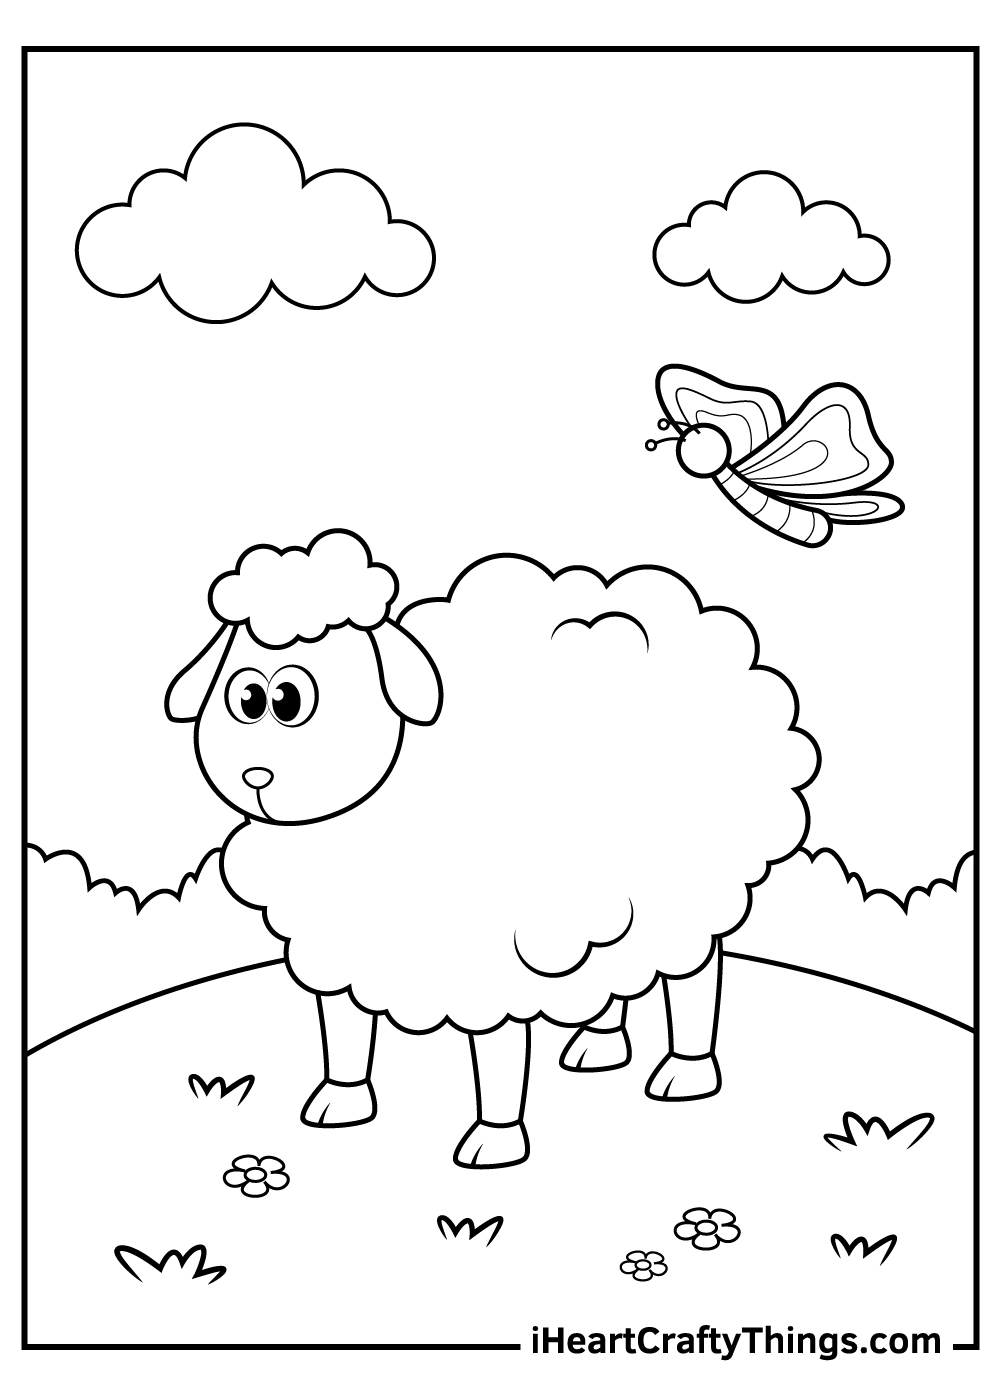 printable sheep coloring updated numbers lesson plan measure for mask wampwum belt coloring pages Sheep Coloring Page